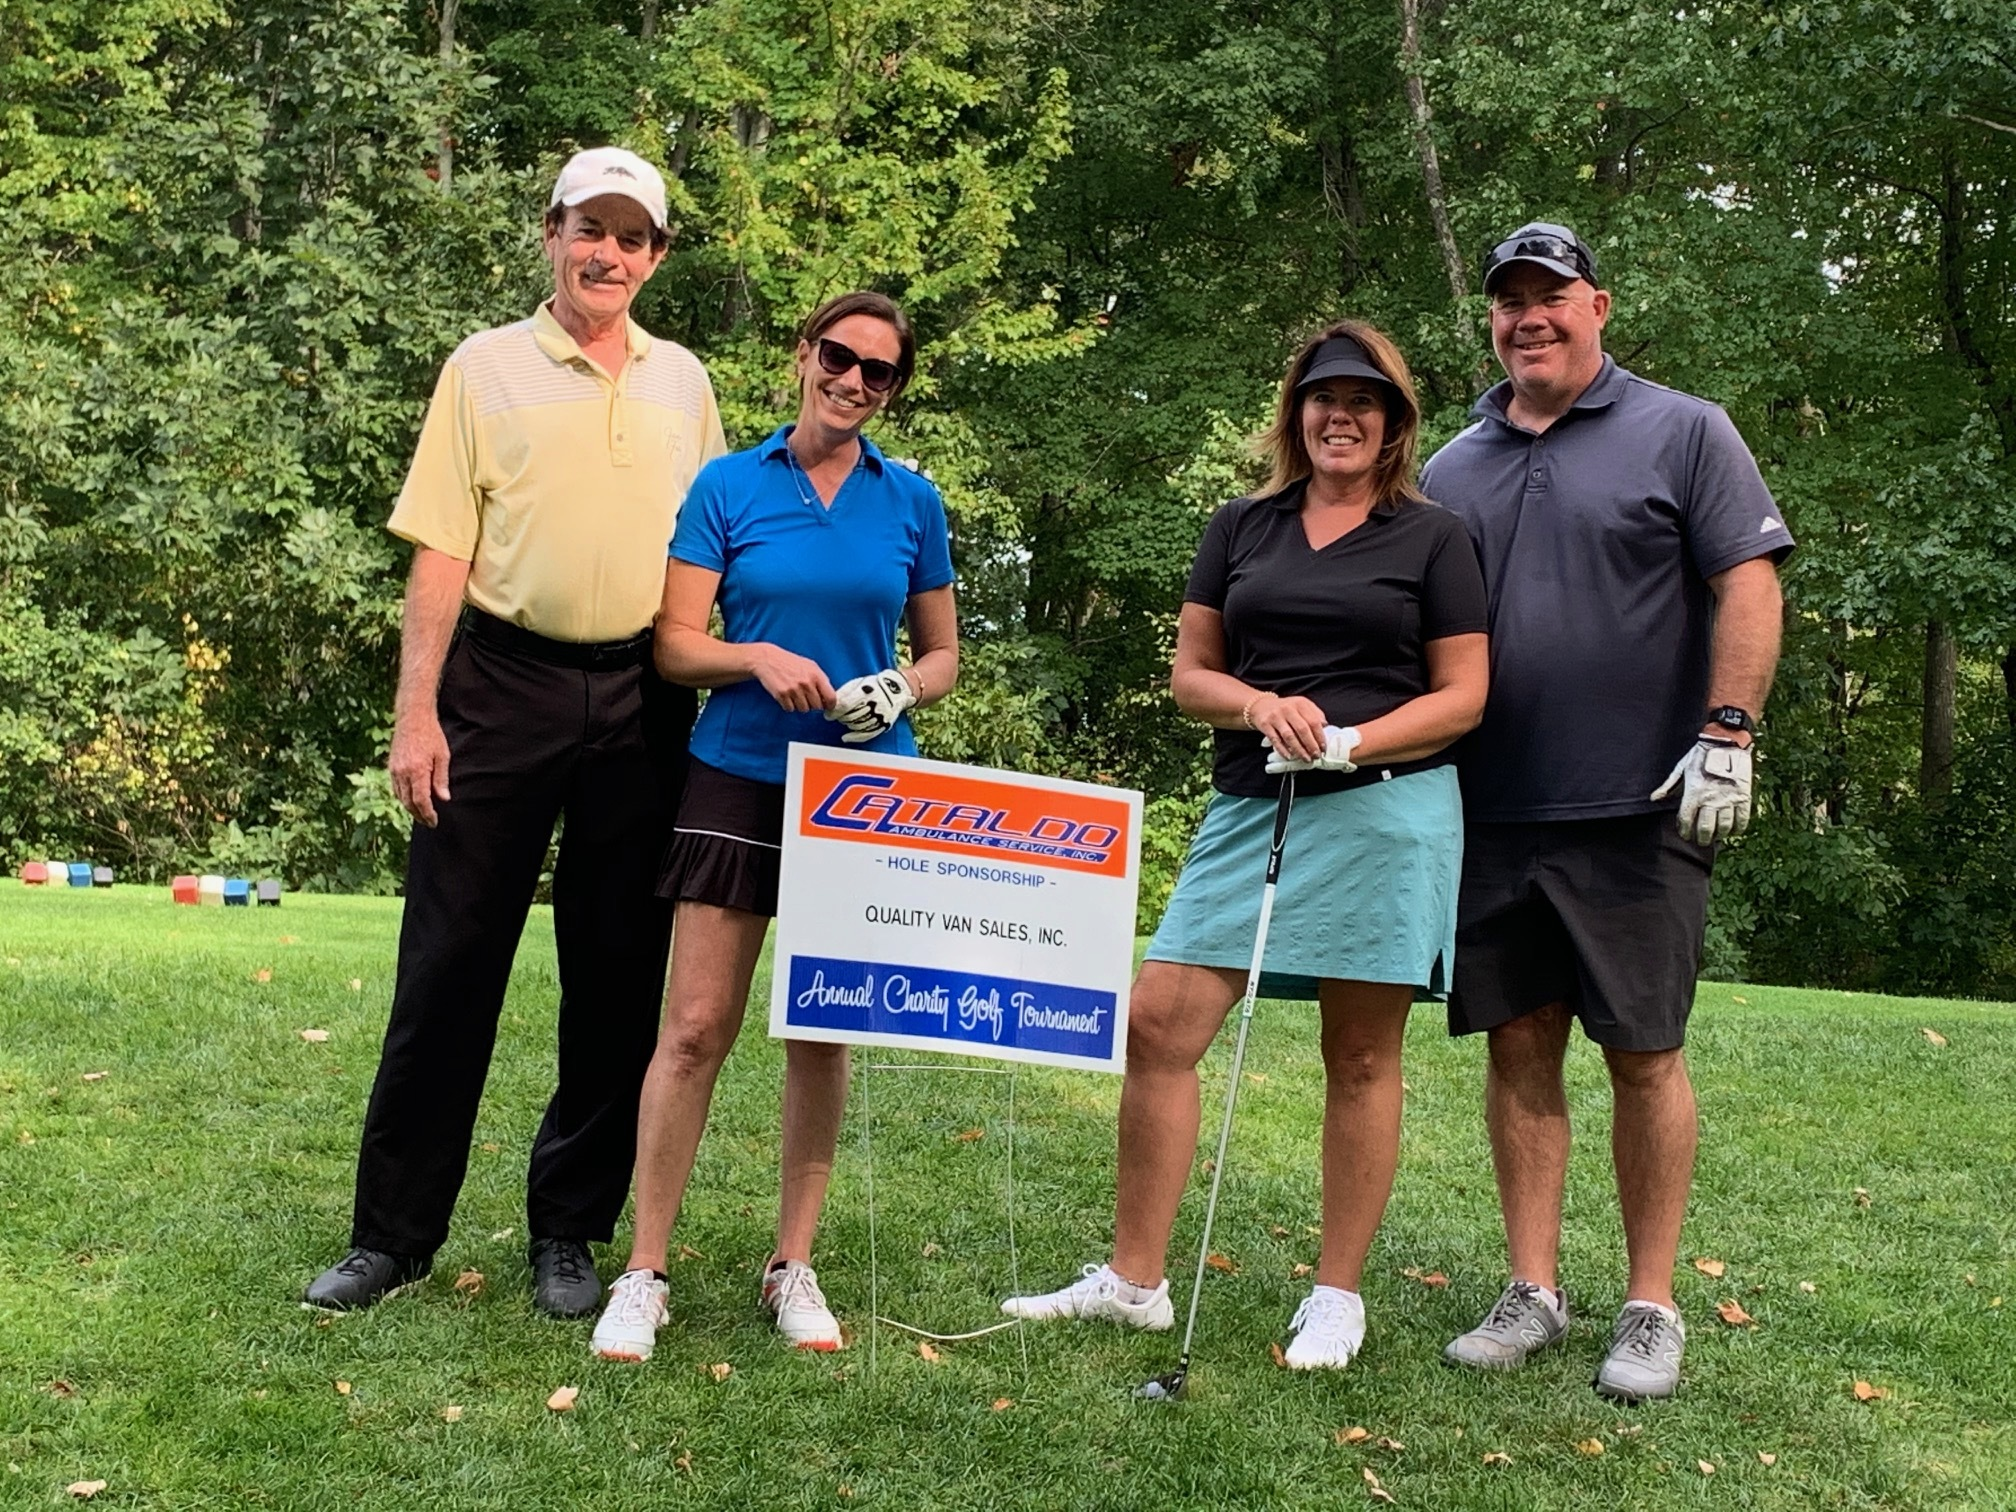 THE 28TH ANNUAL CATALDO SWING FORE HOPE GOLF TOURNAMENT gallery image #10